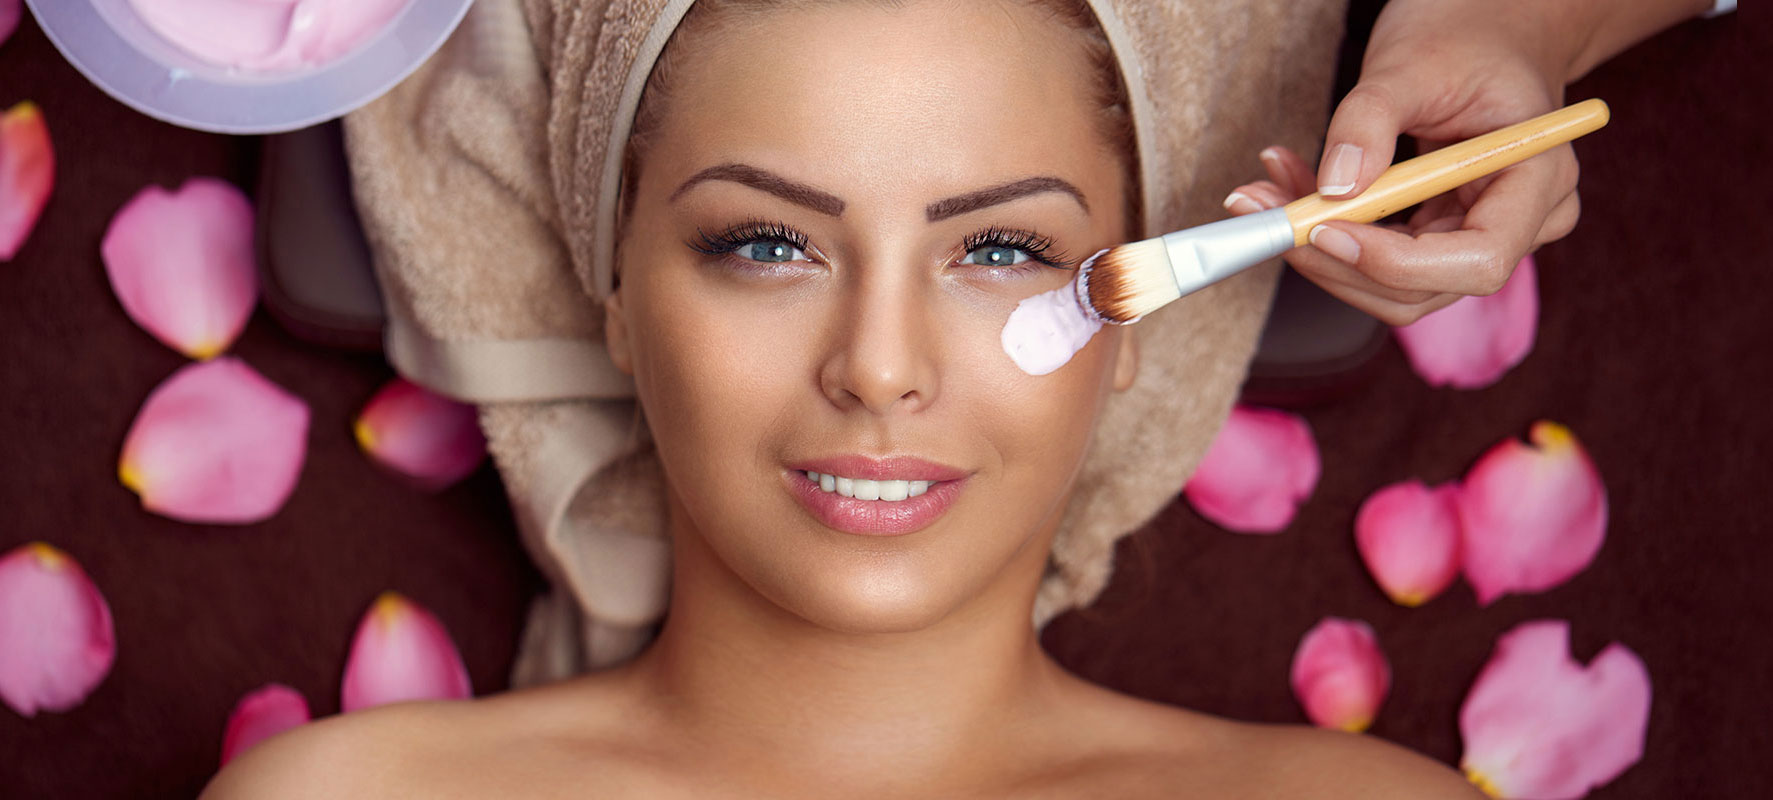 Image of a woman at a spa getting a facial